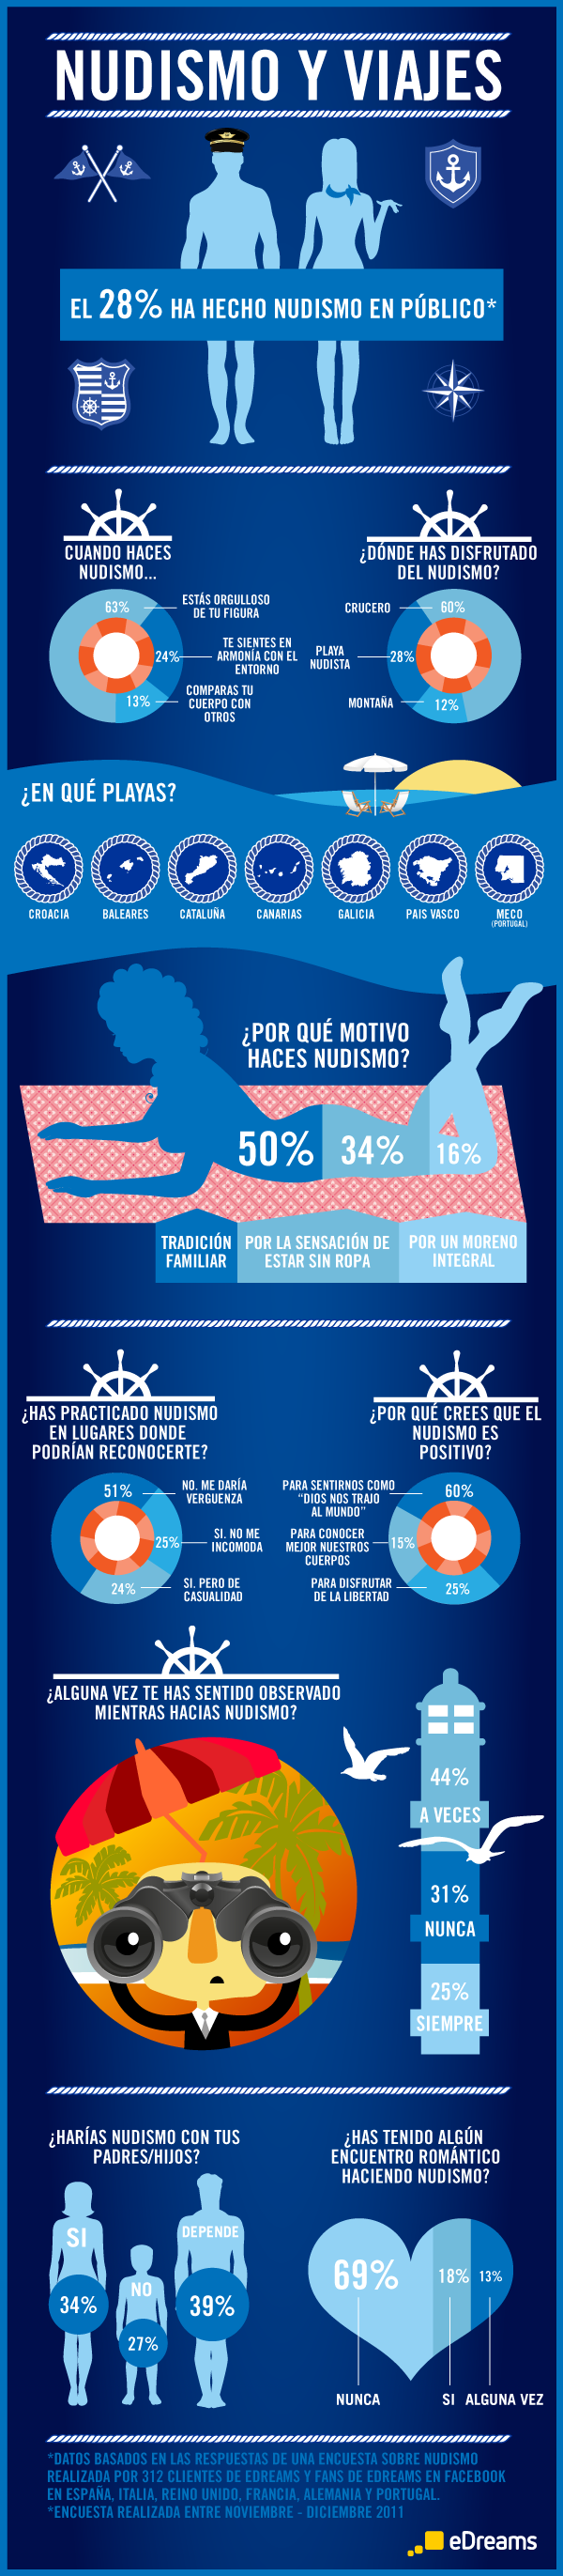 infografico nudismo eDreams